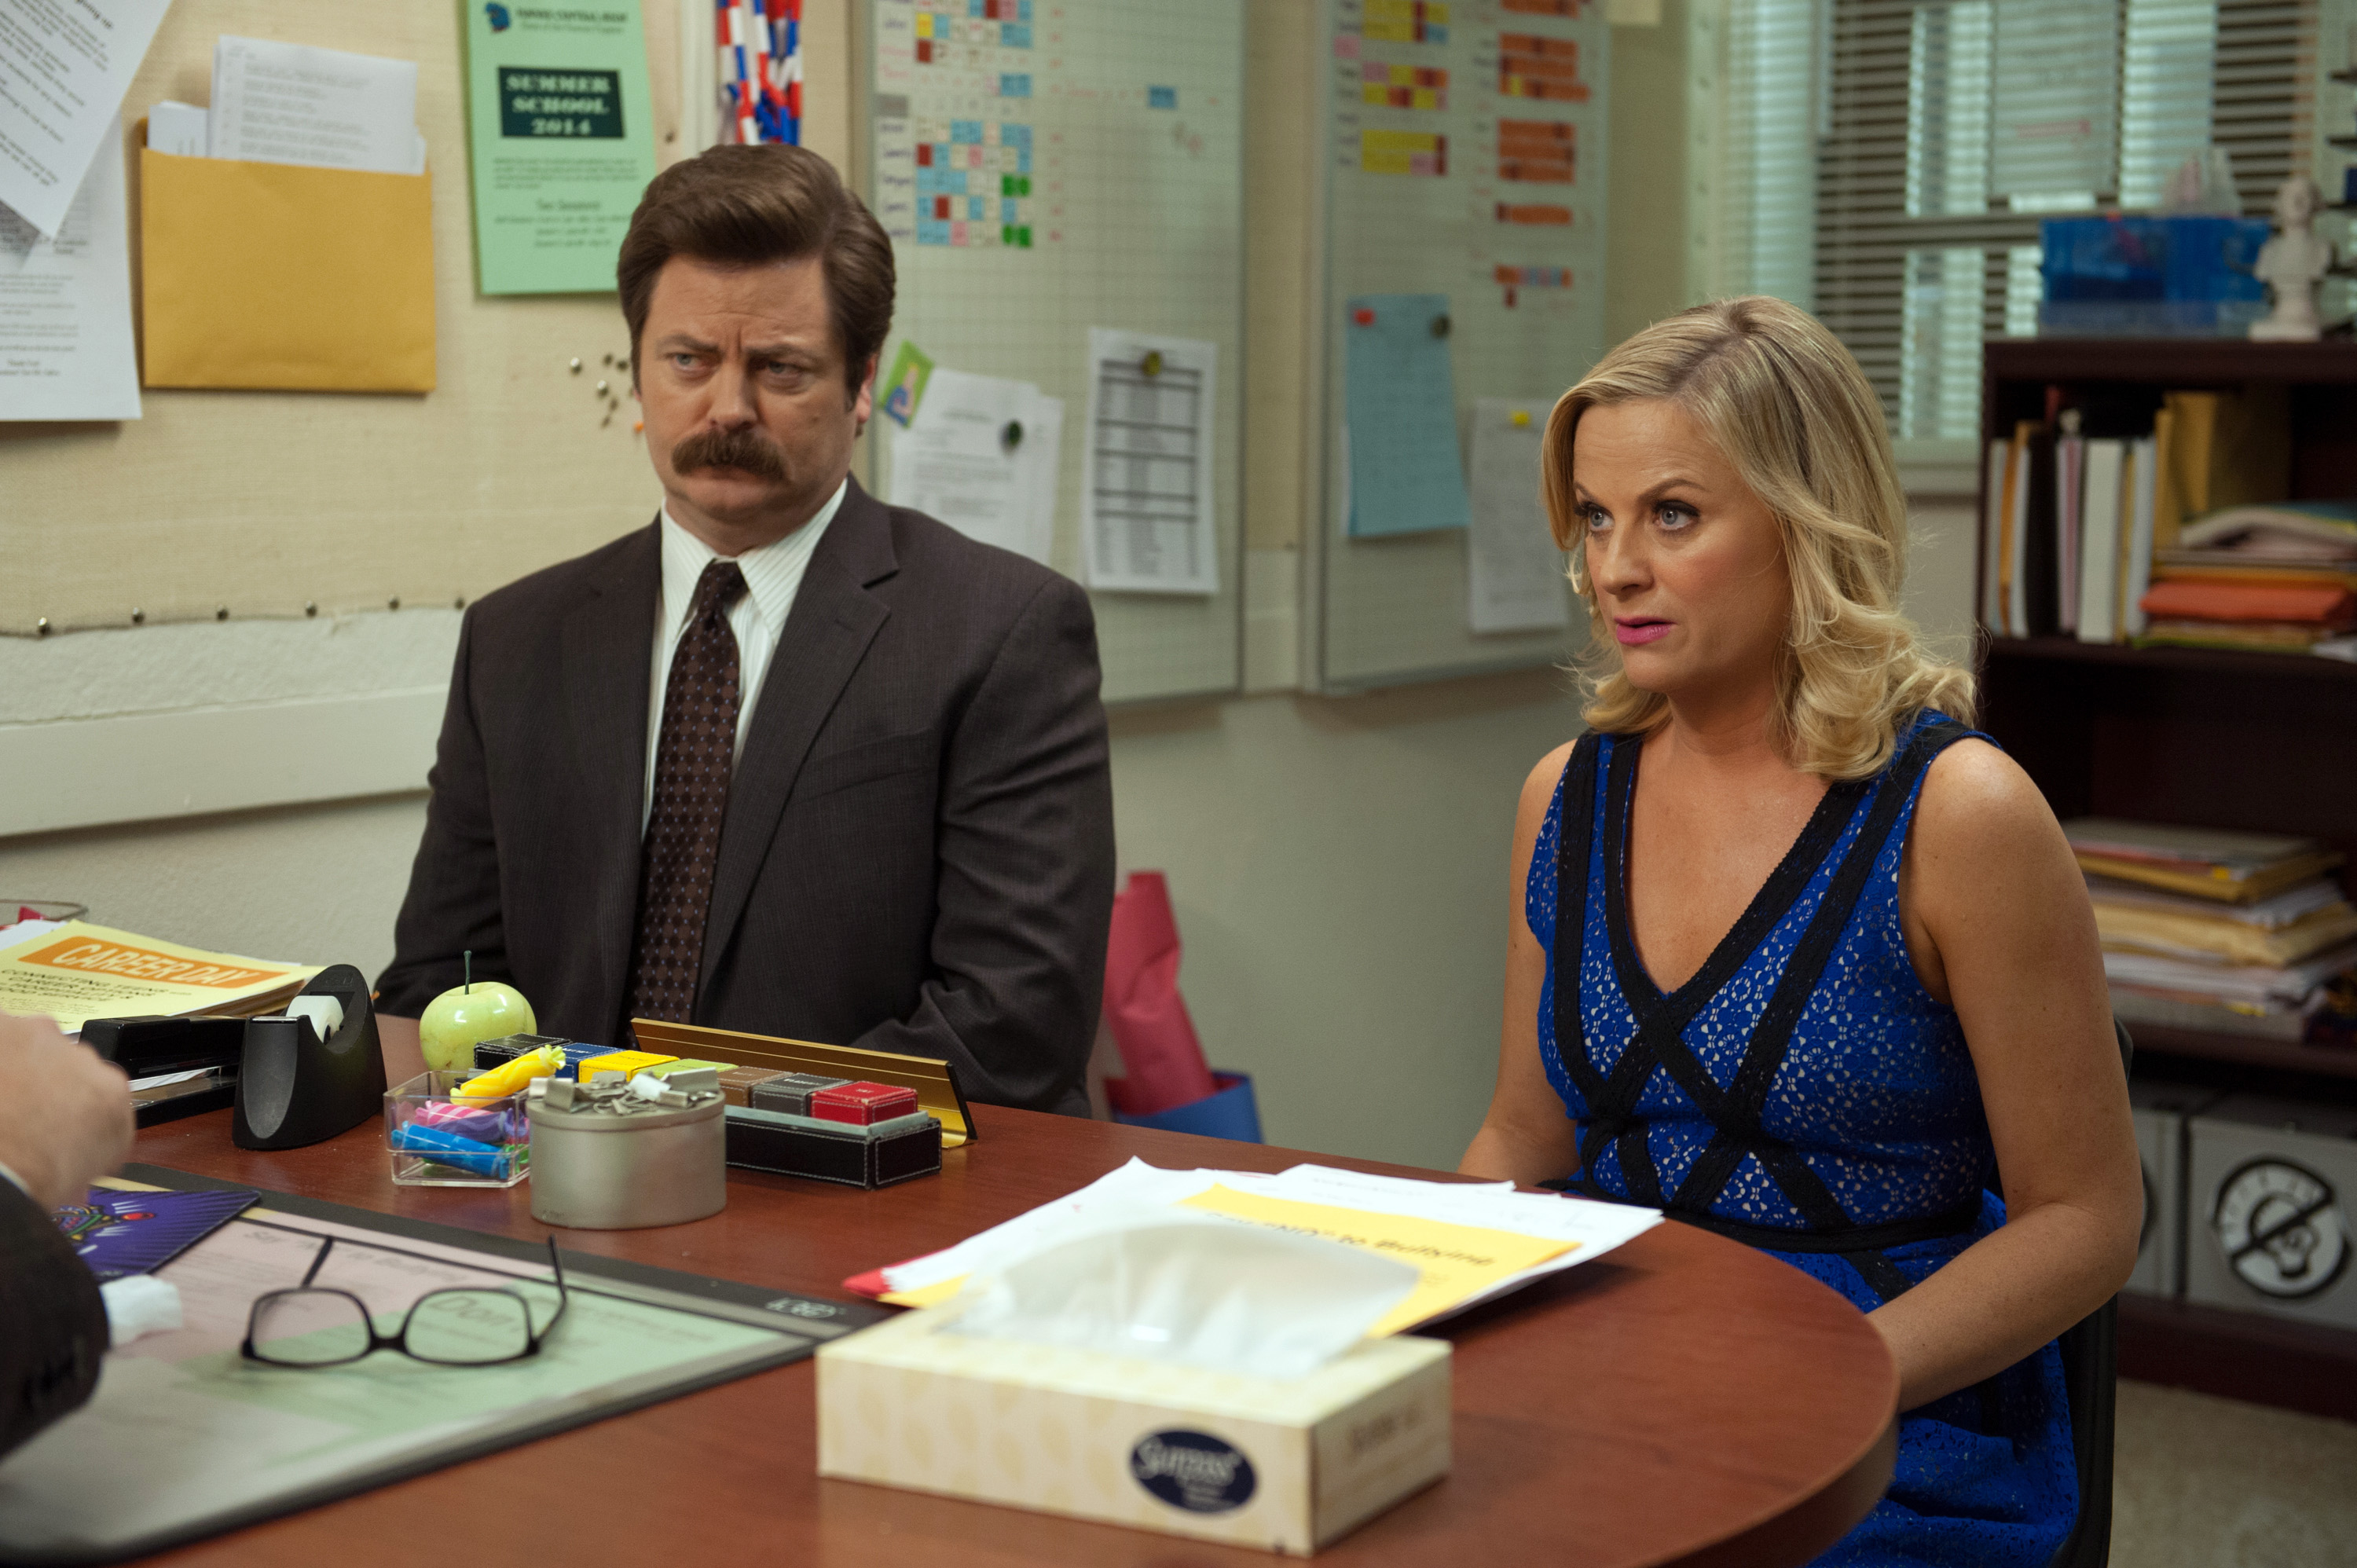 Not a drill, Amy Poehler and Nick Offerman have a brand new show together